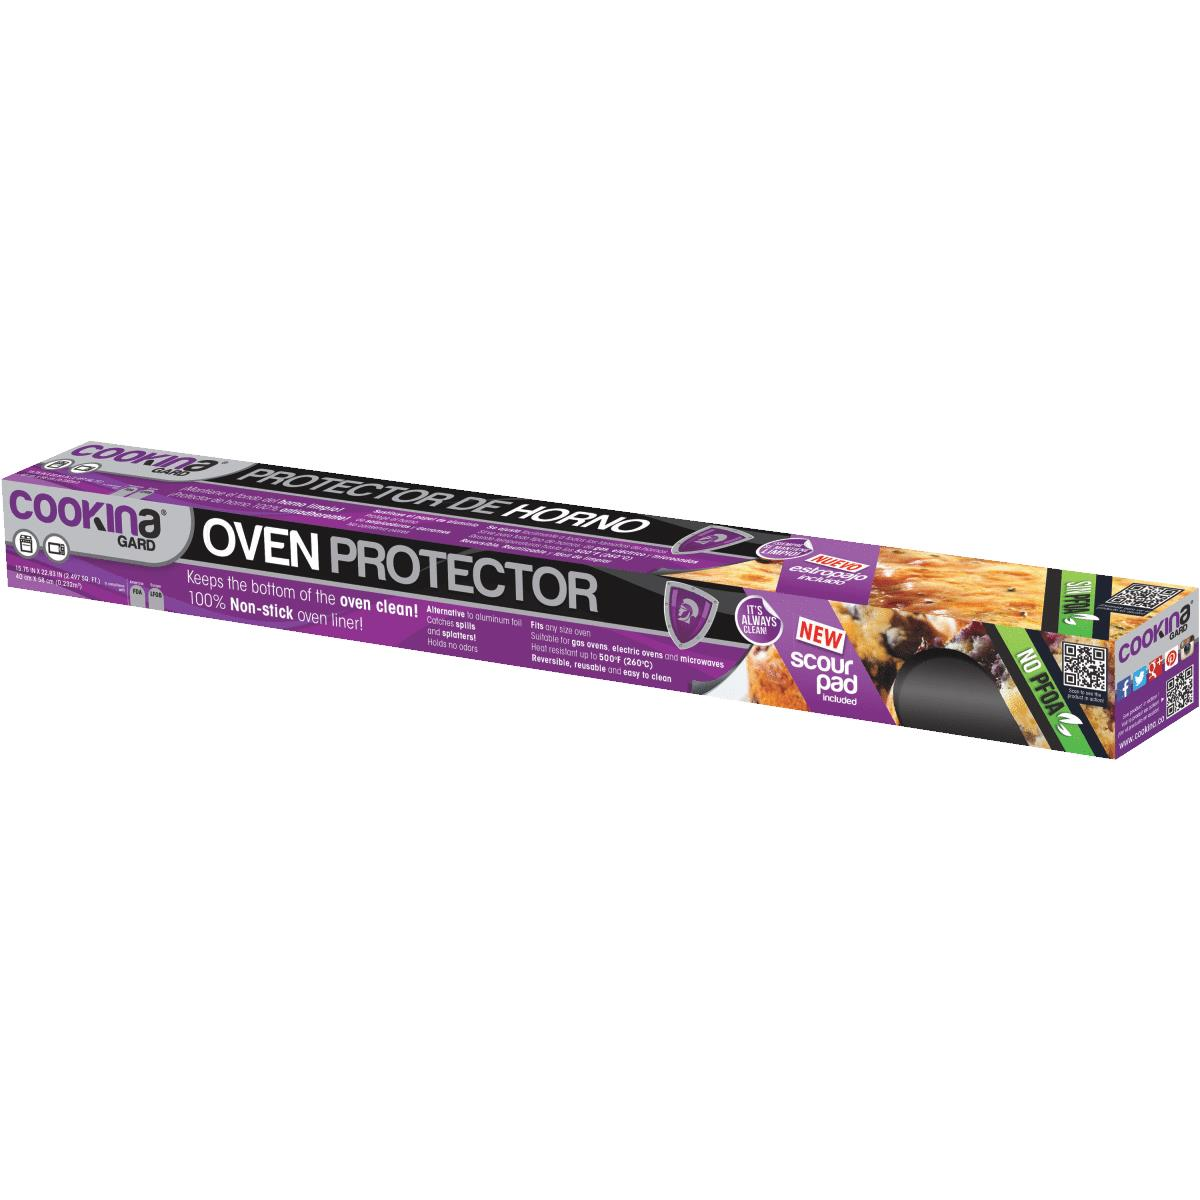 Cookina Protector Oven Liner